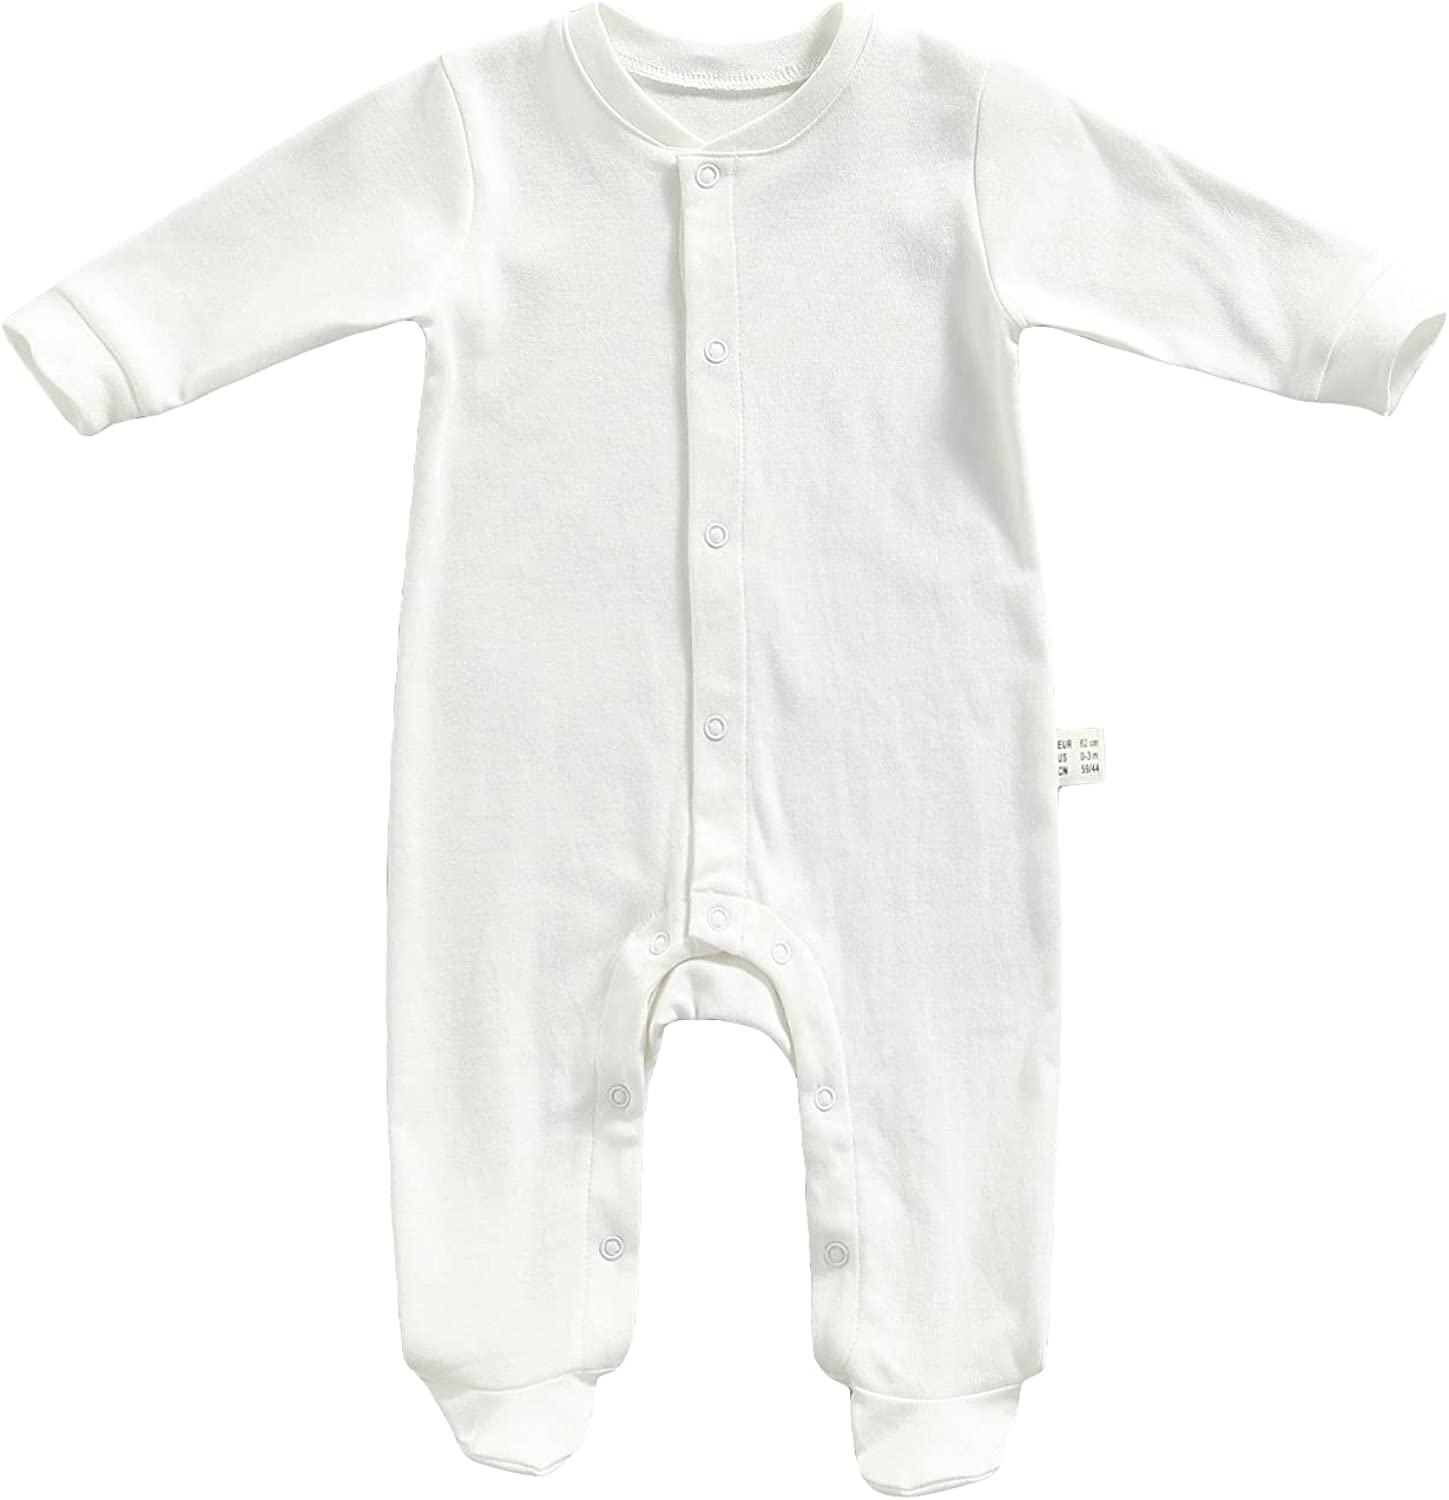 TINXIEA Newborn Infant Very popular Baby Boys Organic Girls Lo Cotton Recommended Footies